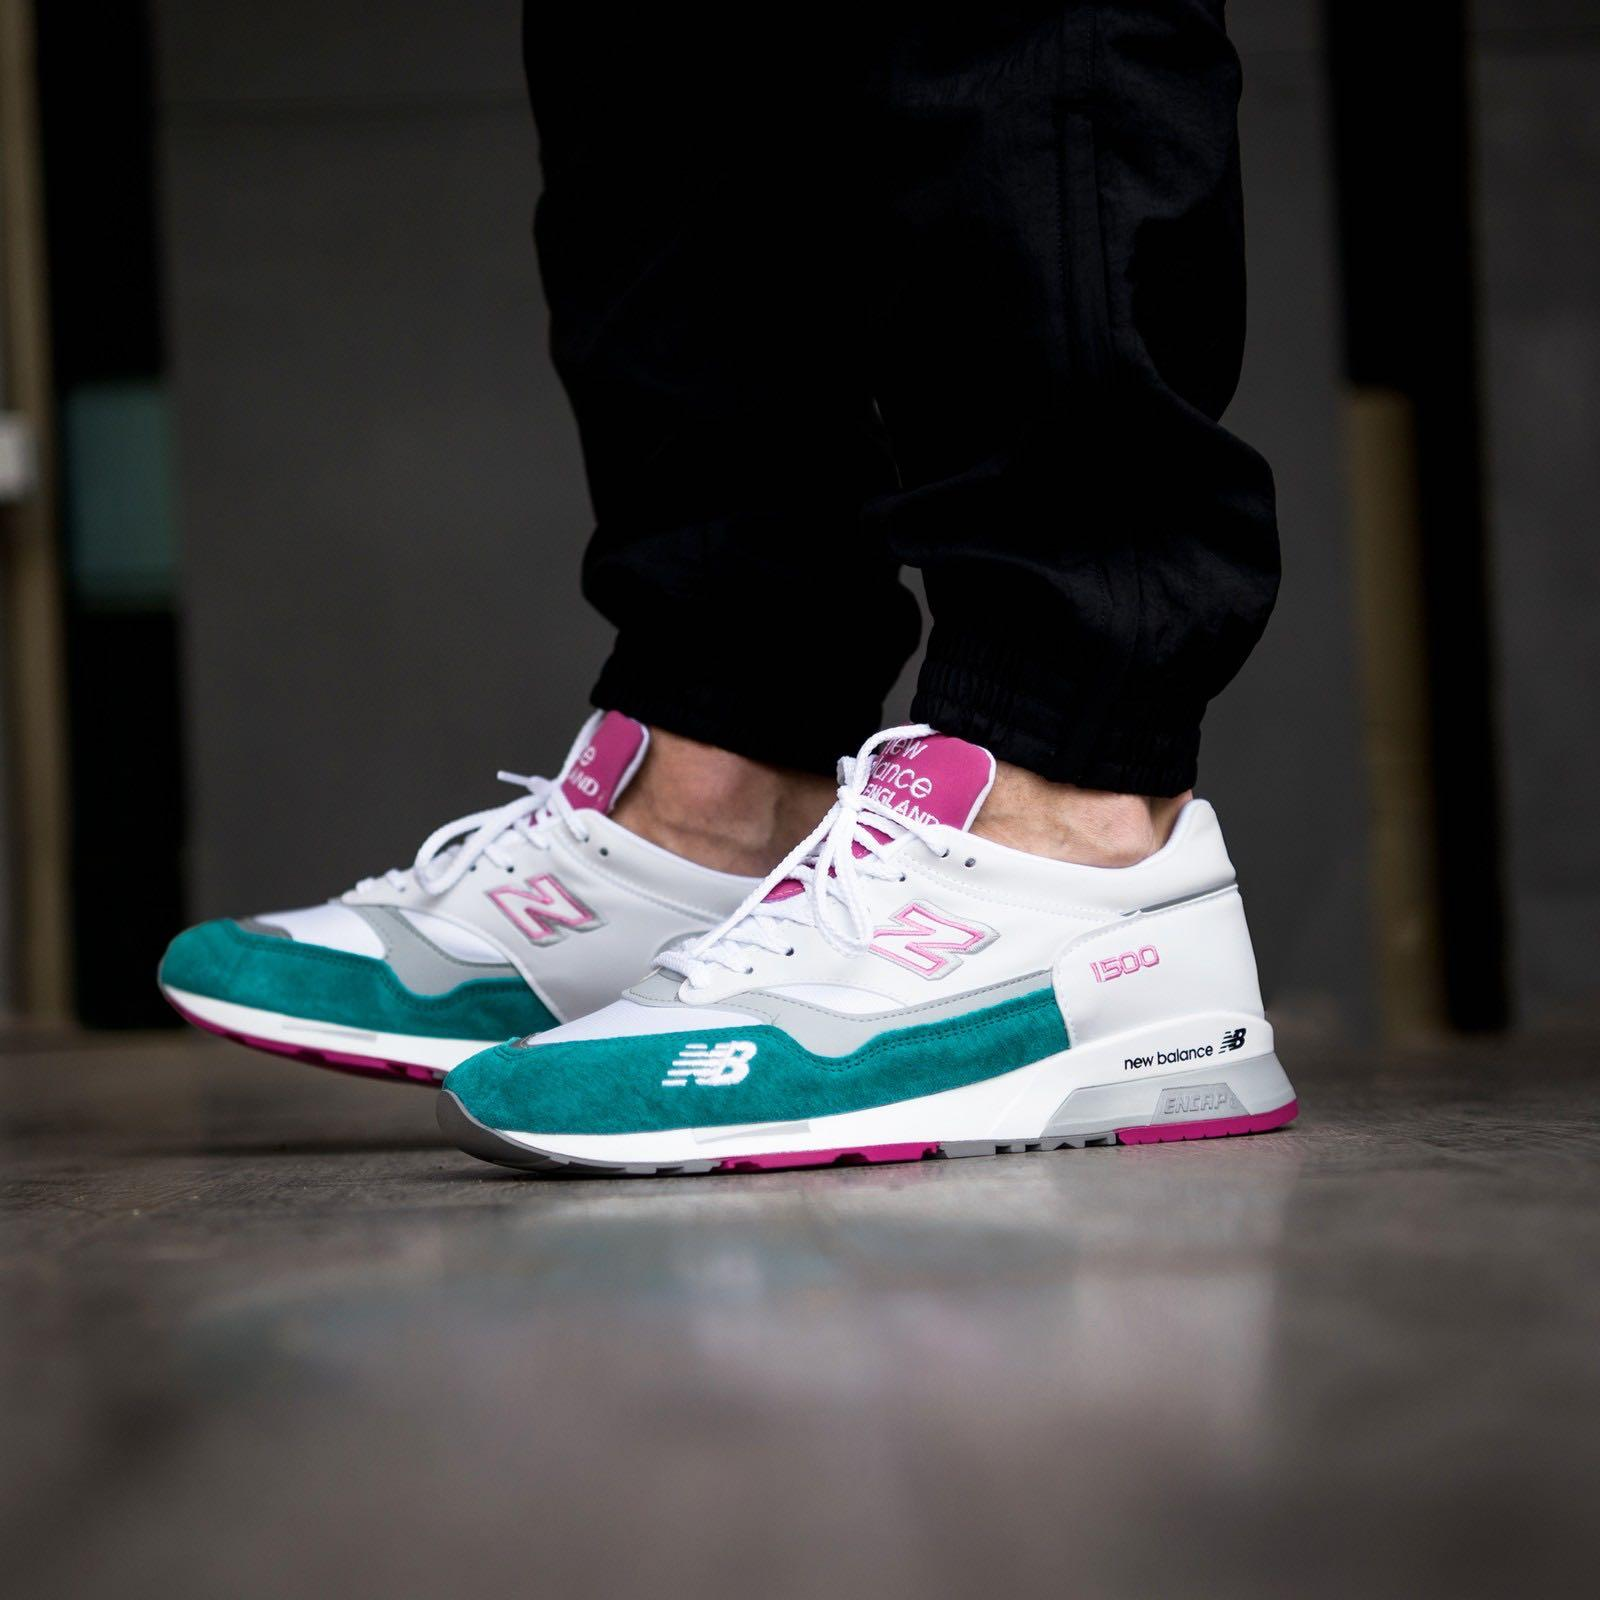 official photos 80506 707fd New Balance M1500 Made in UK M1500WTP White pink, Men's ...